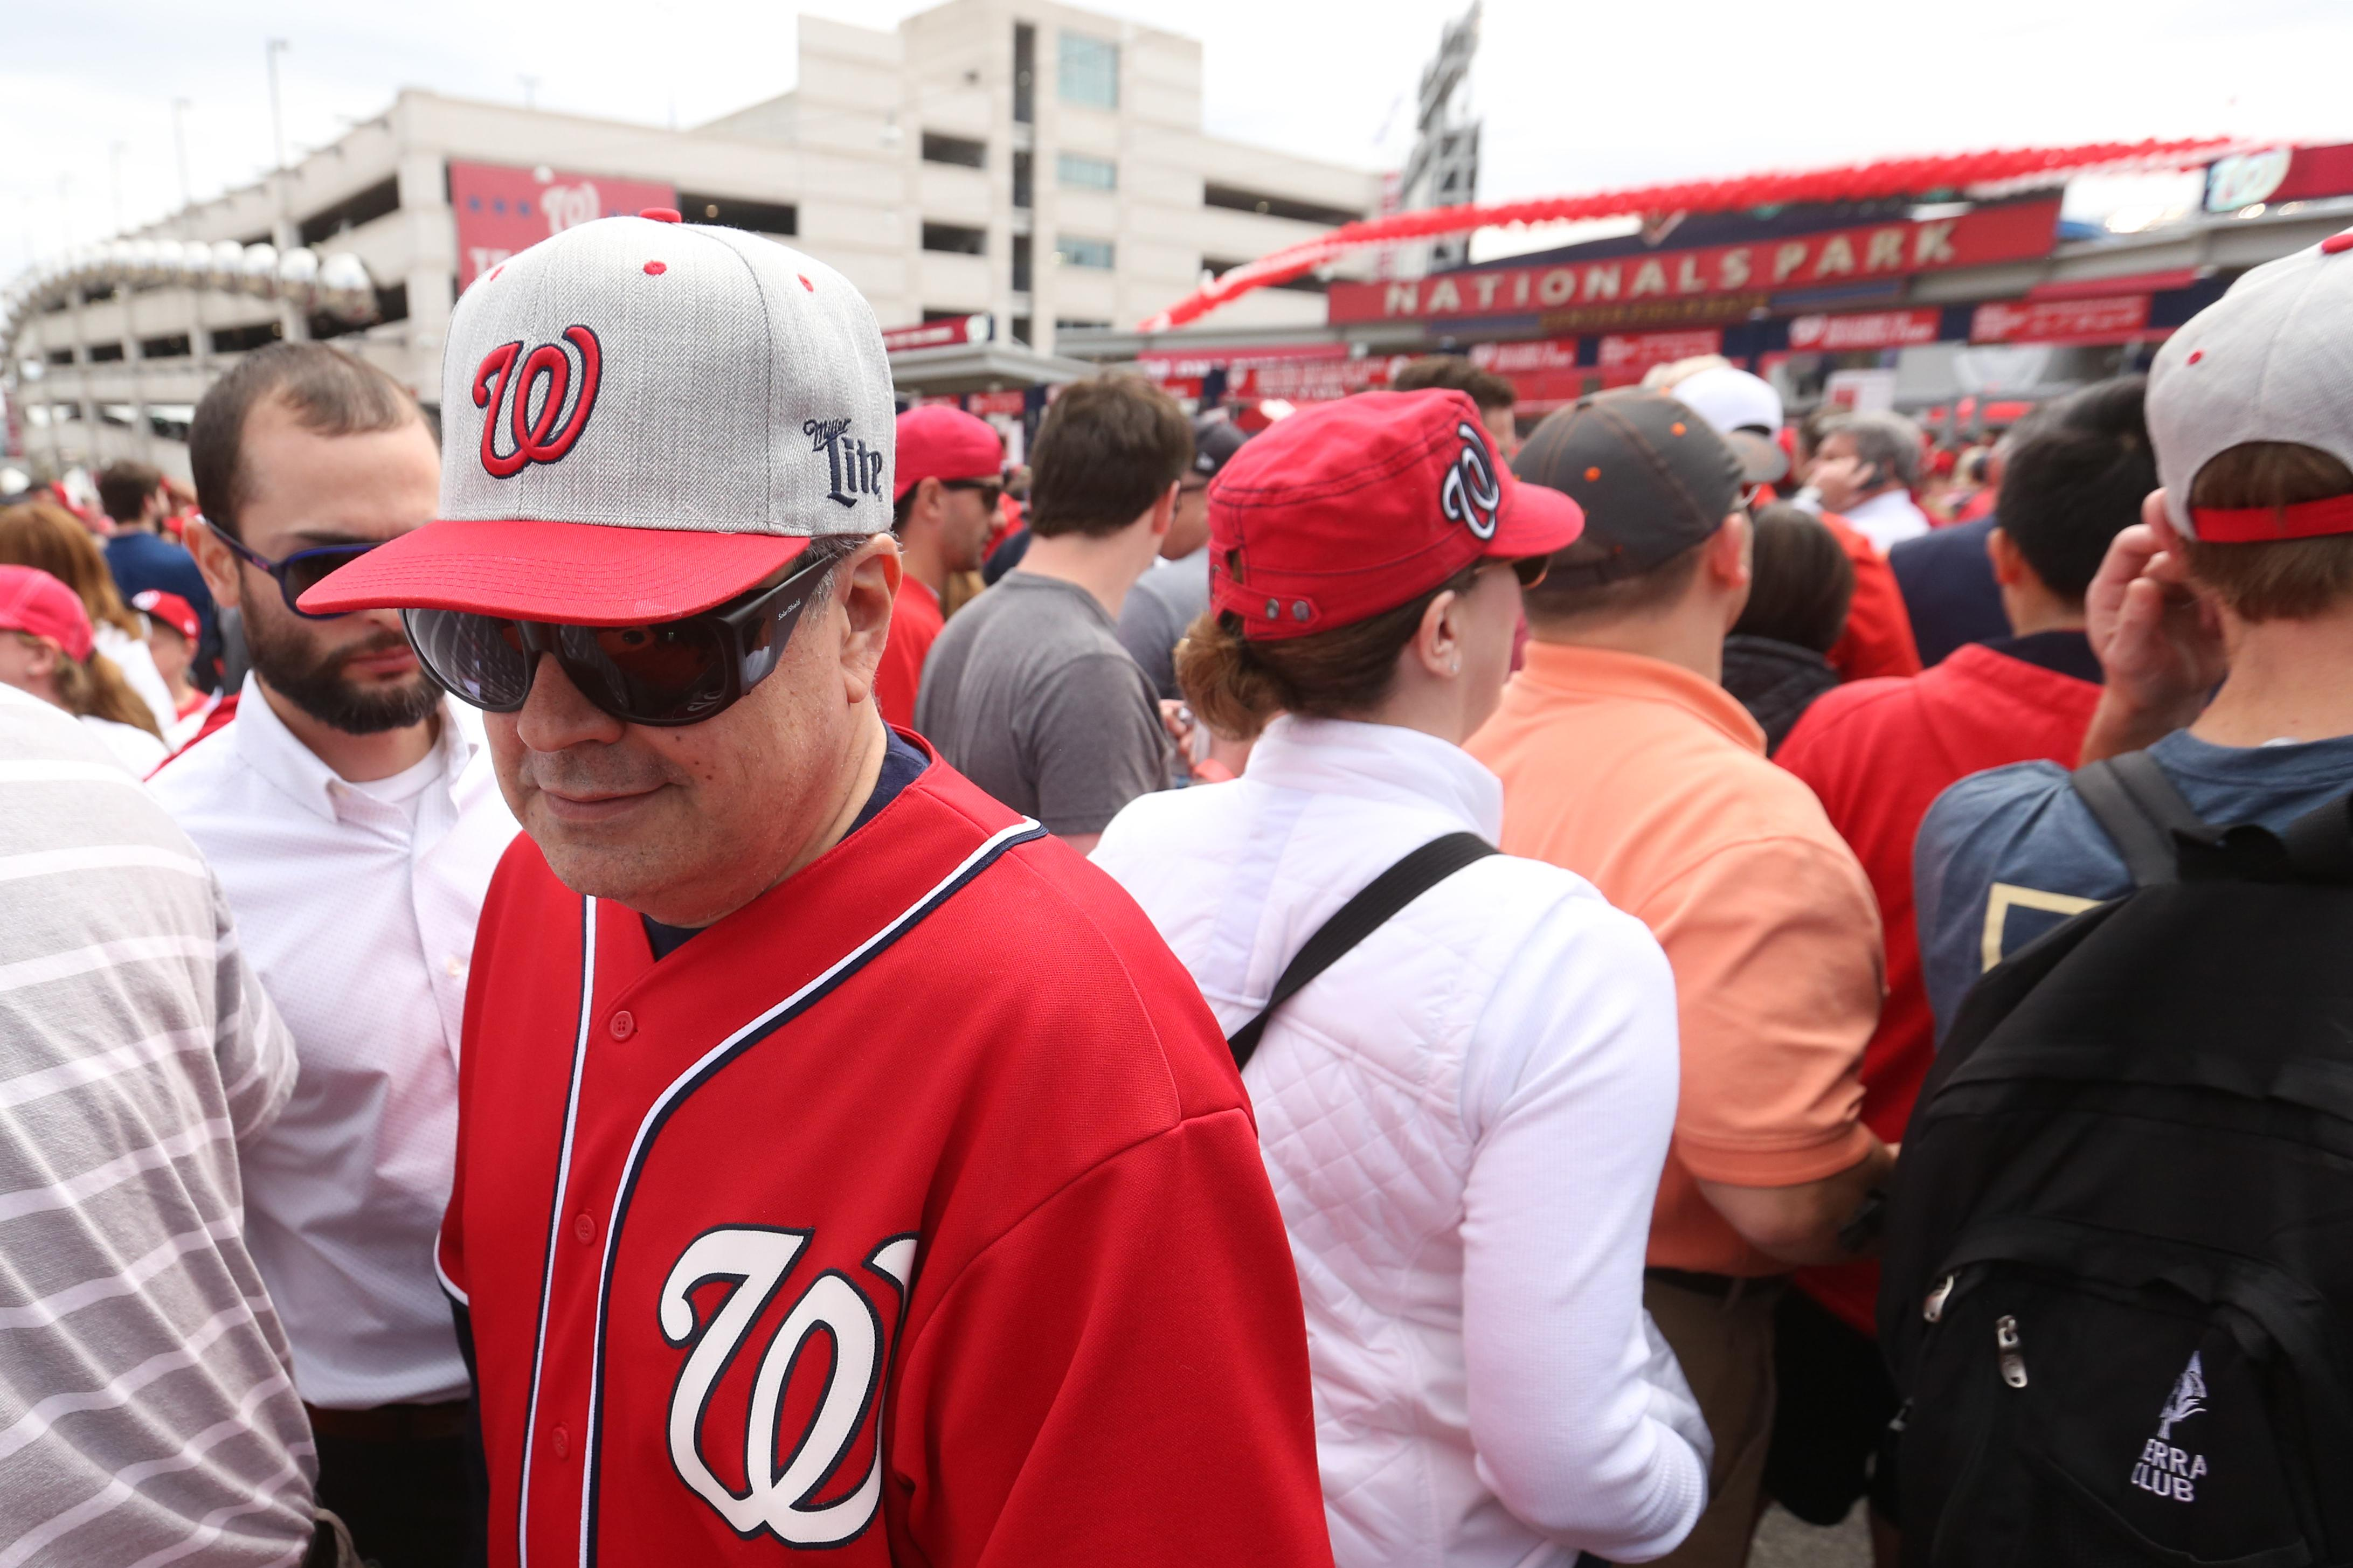 The Nationals opened their 2017 season surrounded by thousands of fans clad in red and navy. The home team faced off against the Marlins on April 3, but the Opening Day ceremonies brings together fans of all ages - no matter the outcome of the game. (Amanda Andrade-Rhoades/DC Refined)